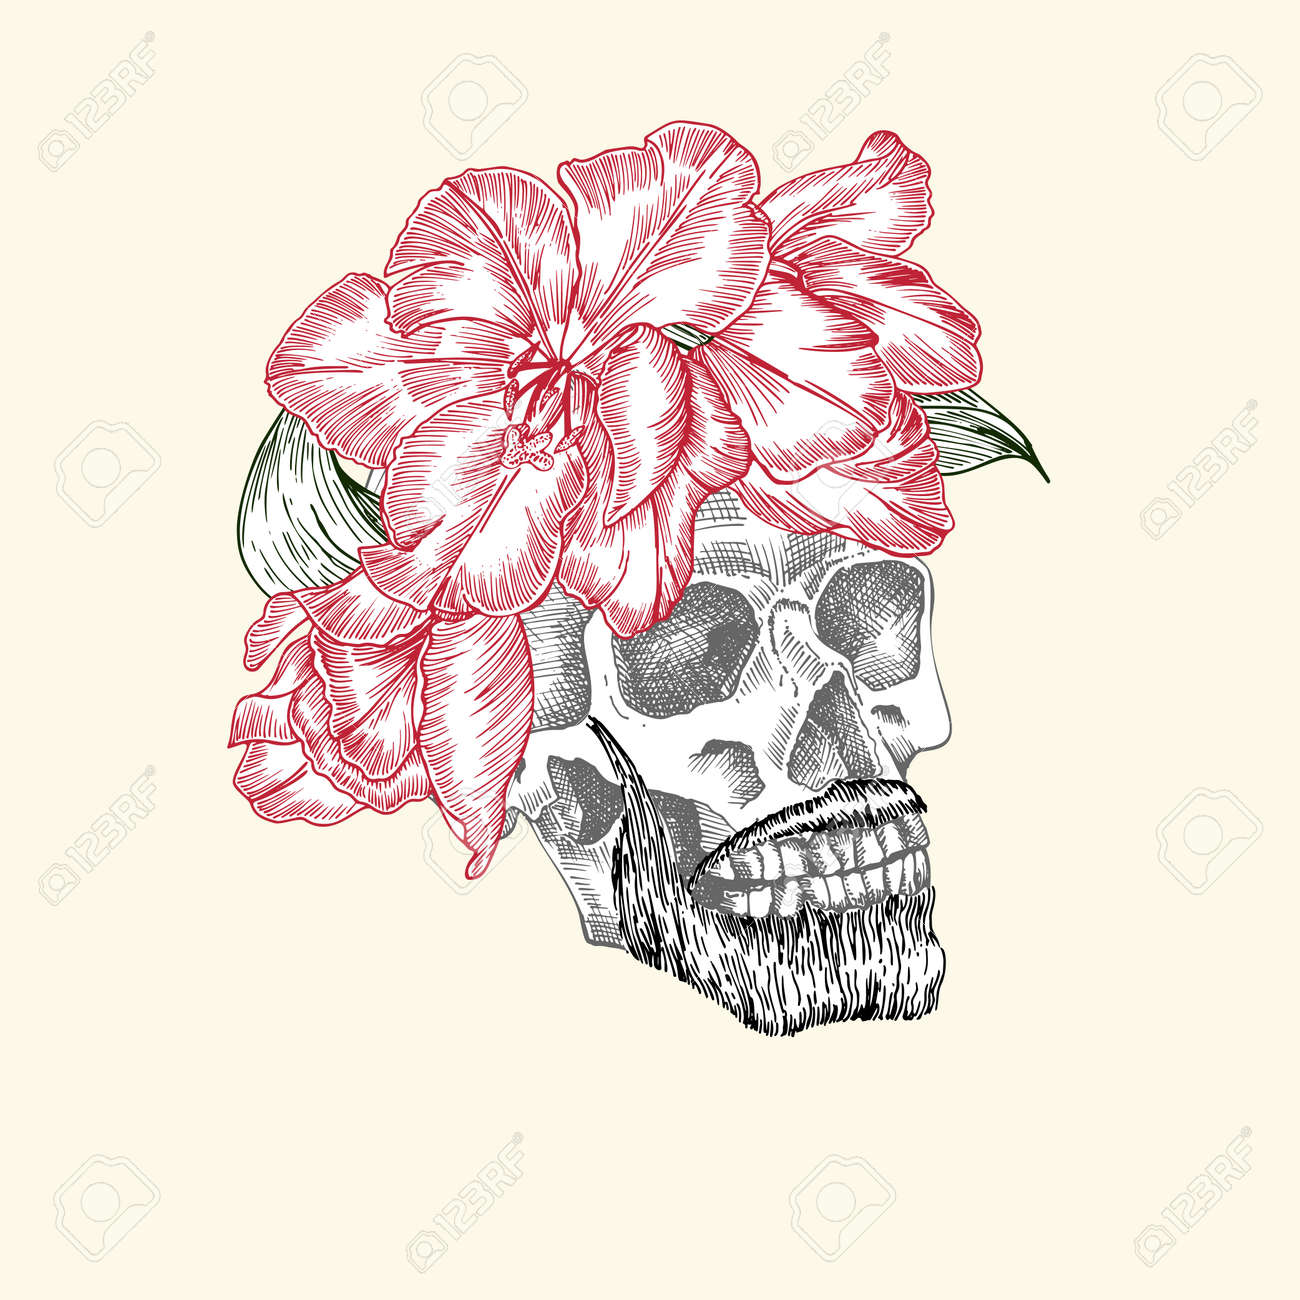 Hand drawn sketch human skull with beard and mustache in wreath of flowers. Red tulip Funny character Black graphic Engraving art isolated on white background. Vintage style. Vector - 161190924